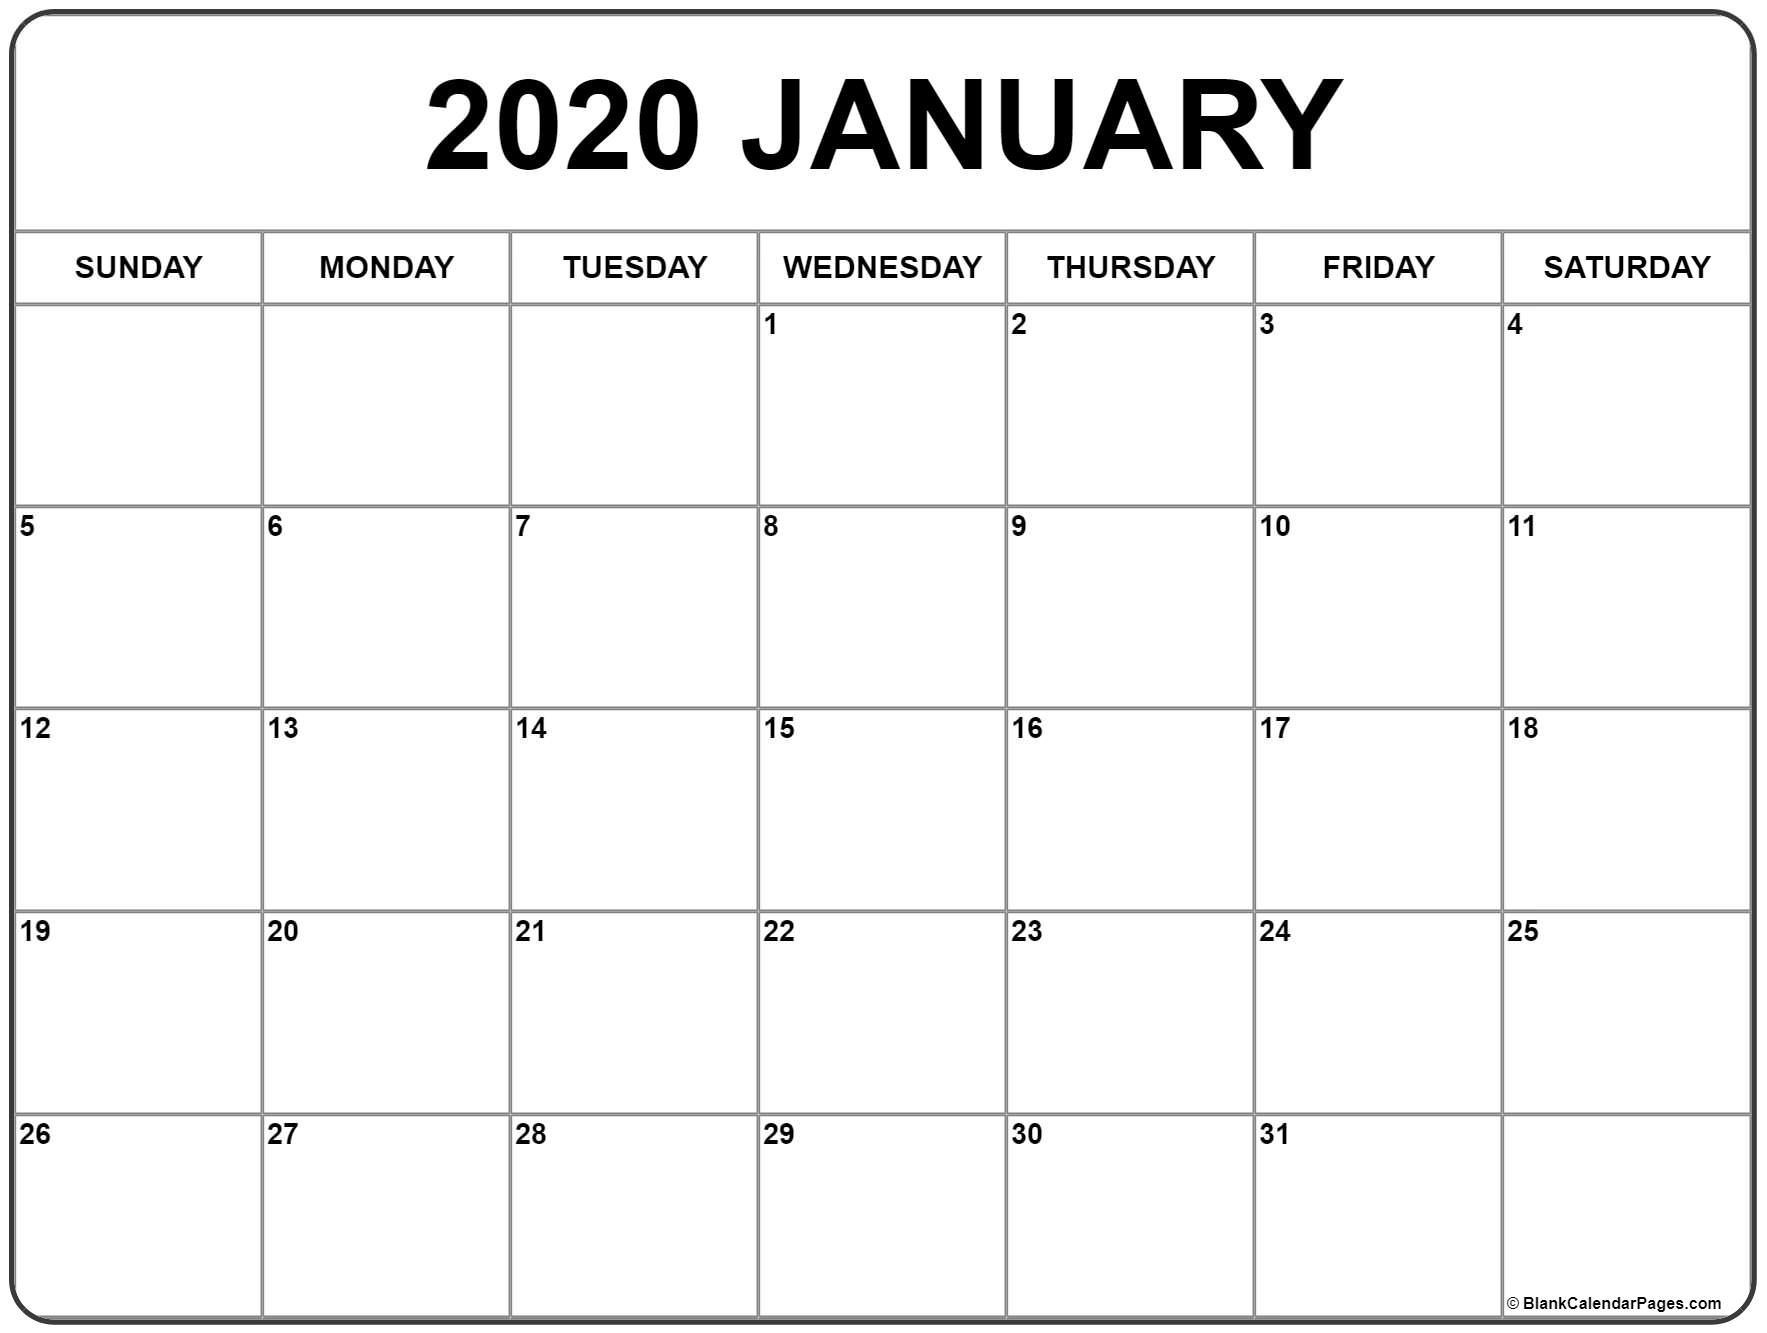 January 2020 Calendar | Free Printable Monthly Calendars-Monthly Calendar Sheets 2020